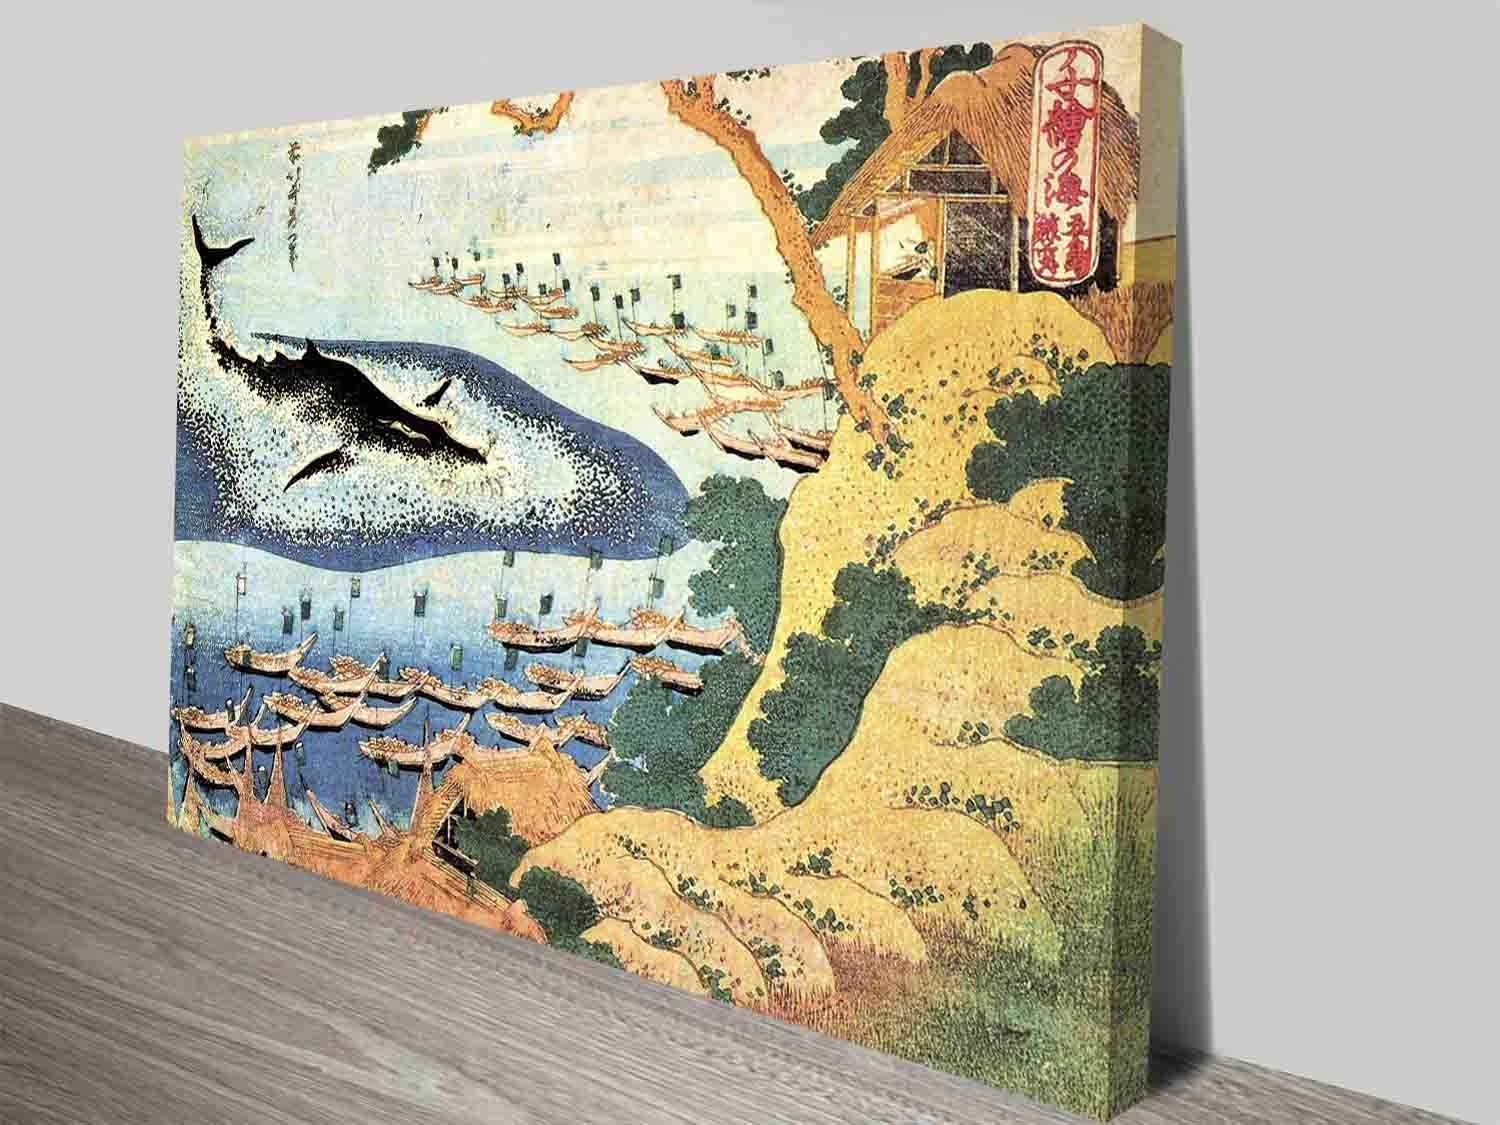 Katsushika Hokusai Ocean Landscape And Whale Wall Art Prints On With Most Up To Date Whale Canvas Wall Art (View 7 of 20)